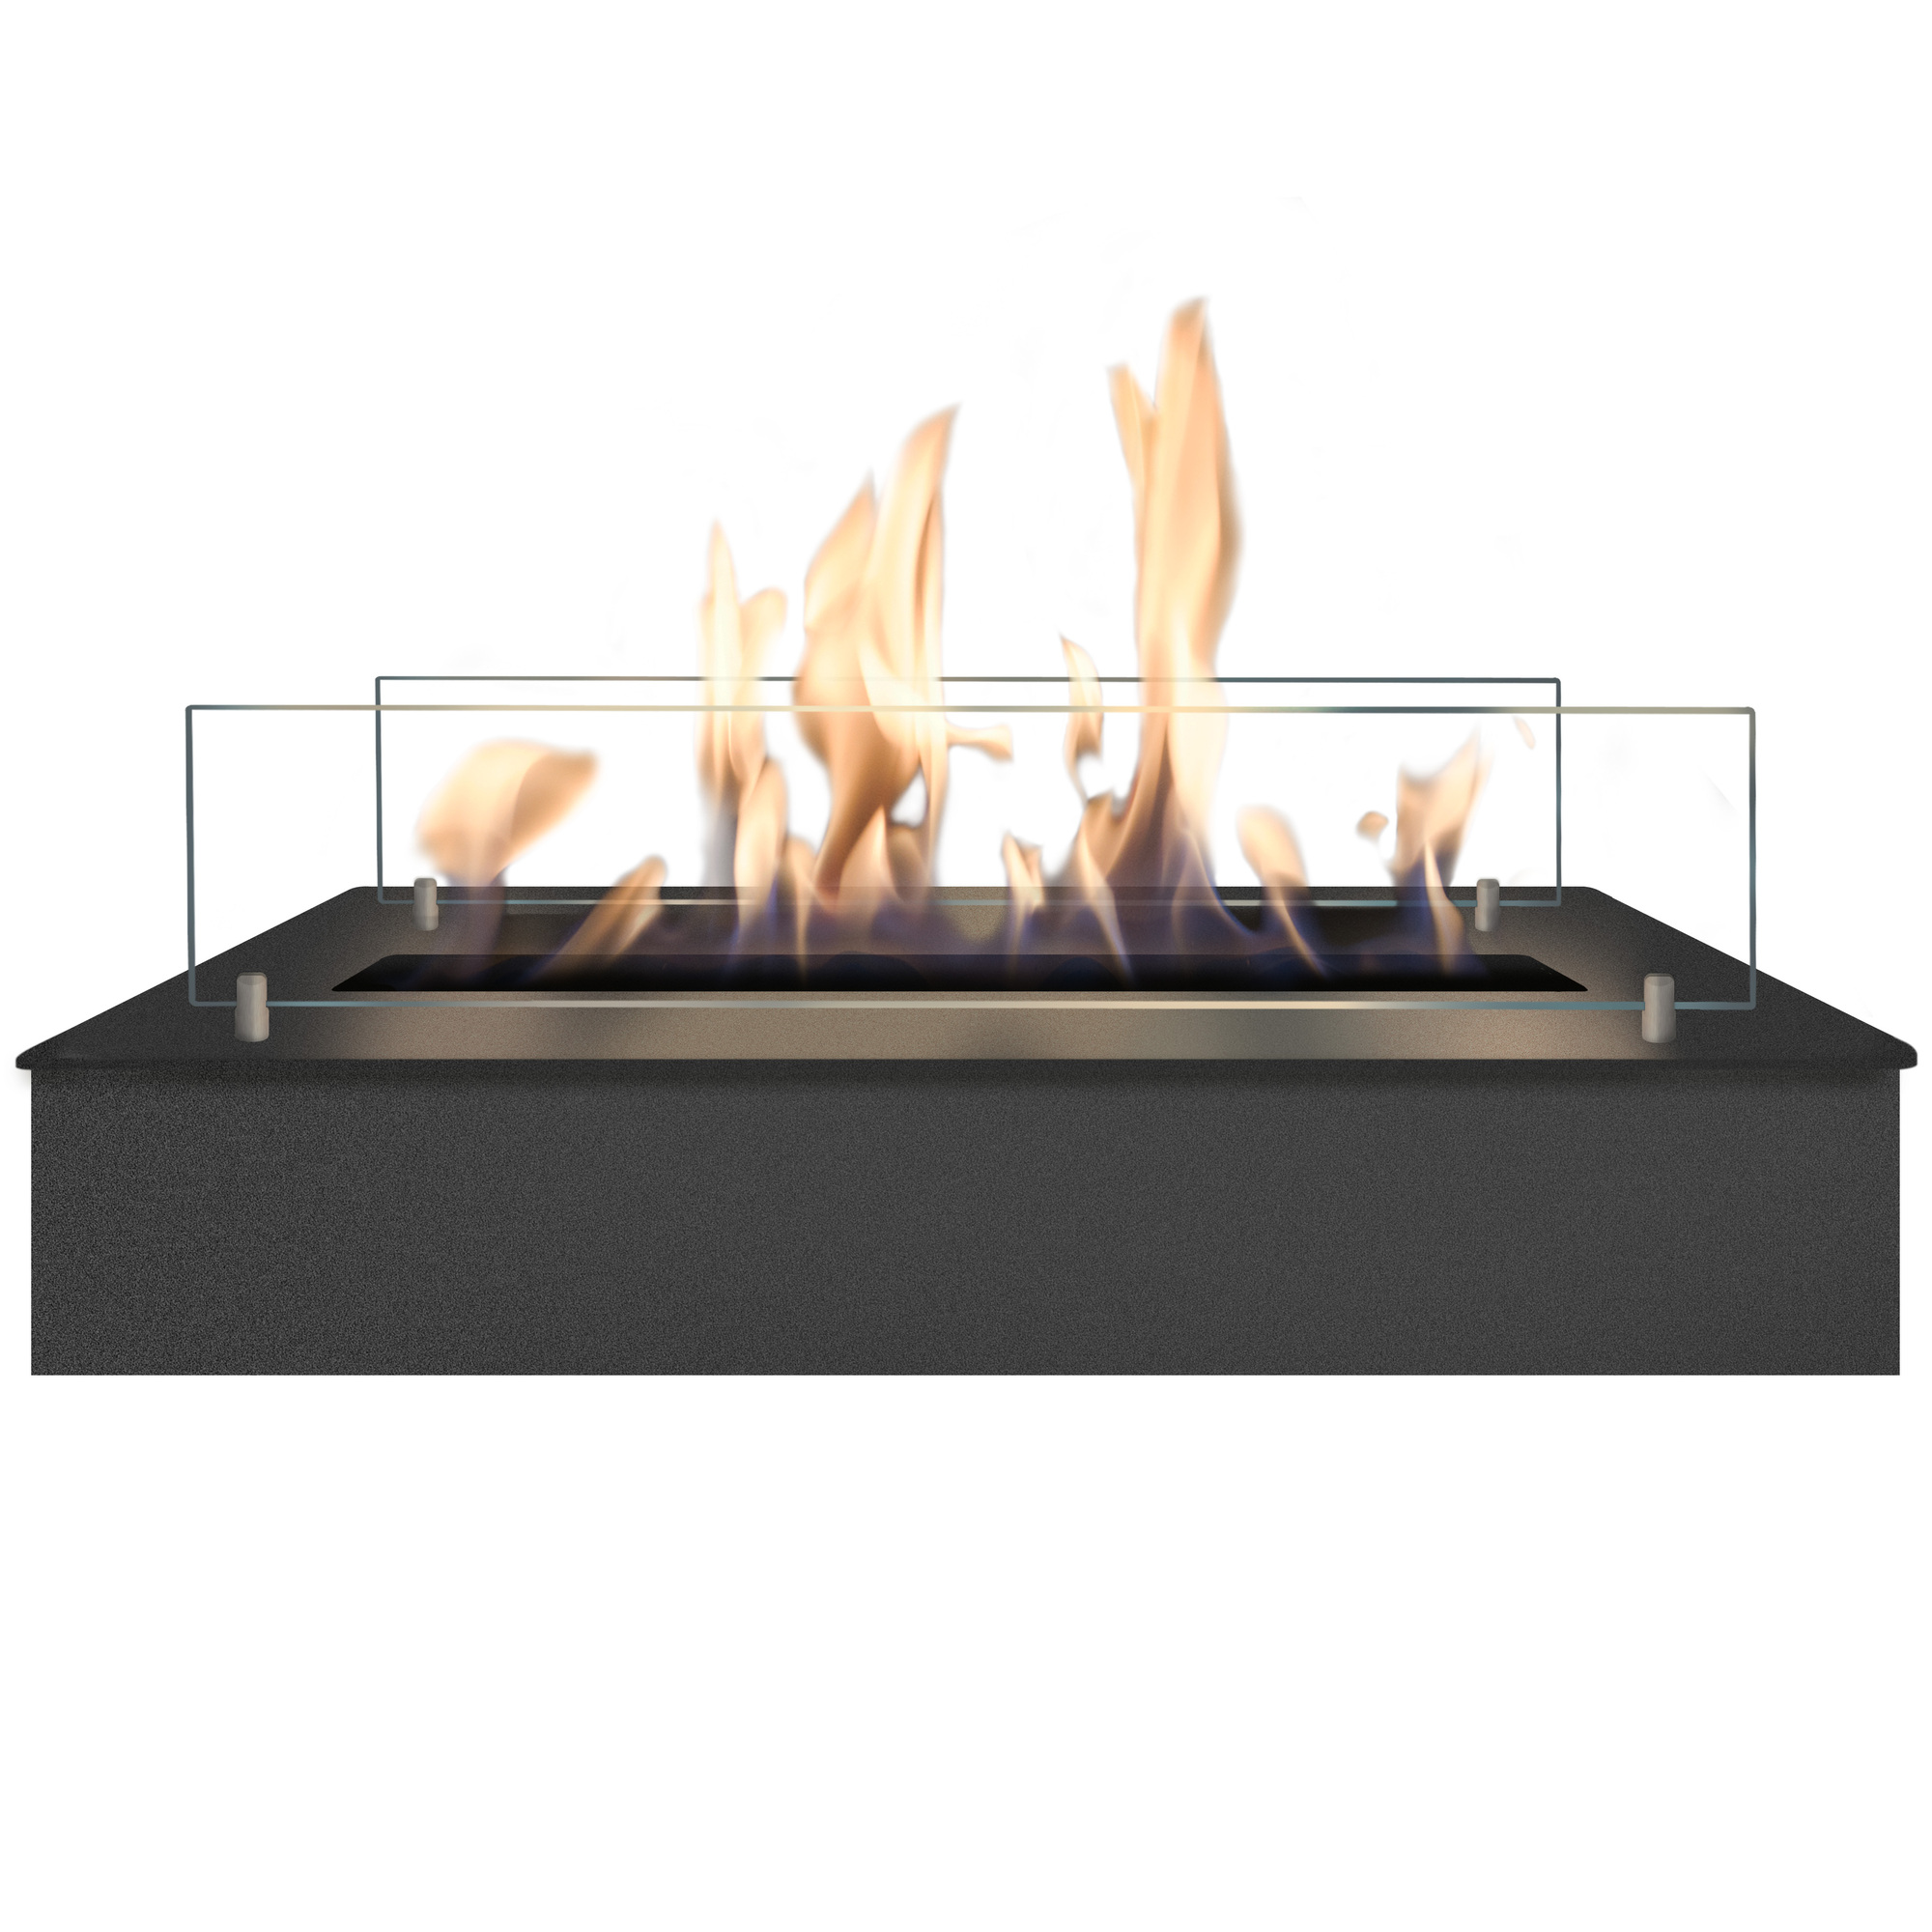 RUBY HOLLAND Bioethanol Burner 5820 Lb Big Burner Black + Glass